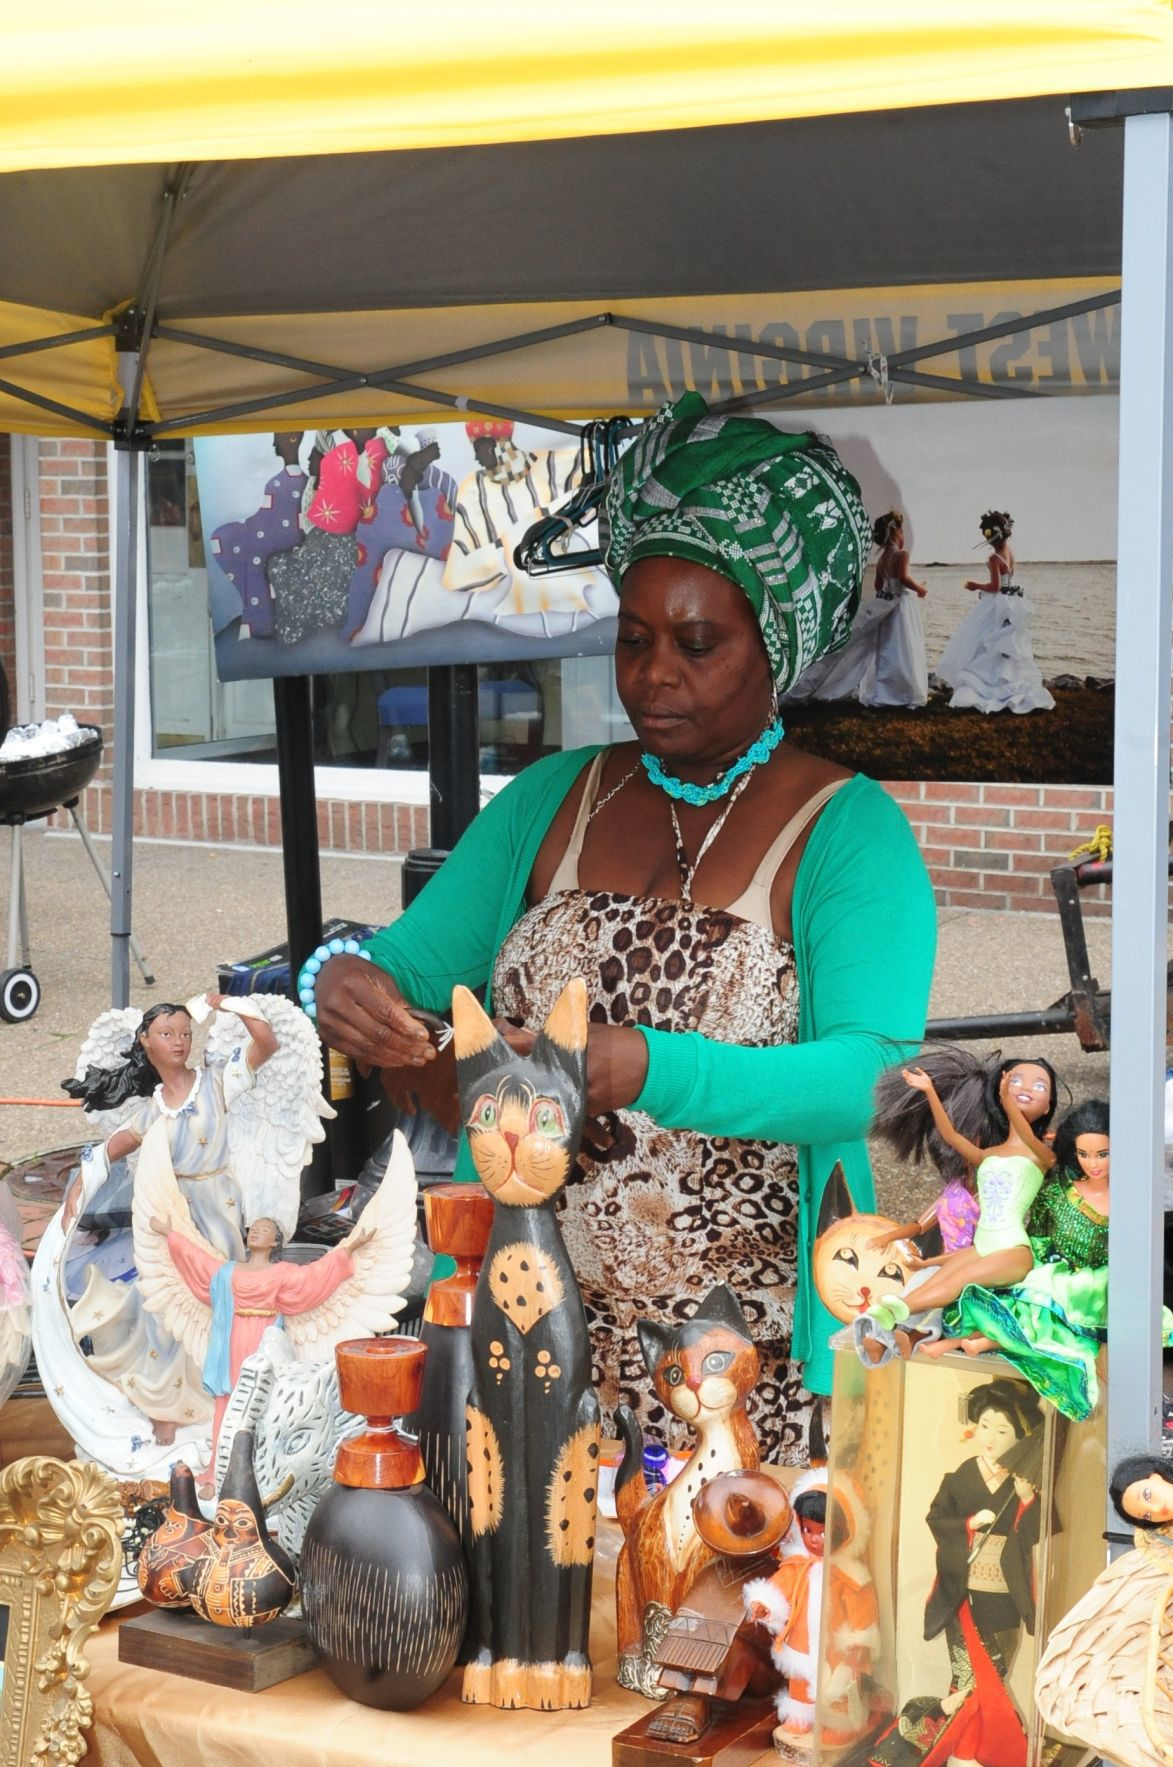 African art and wares